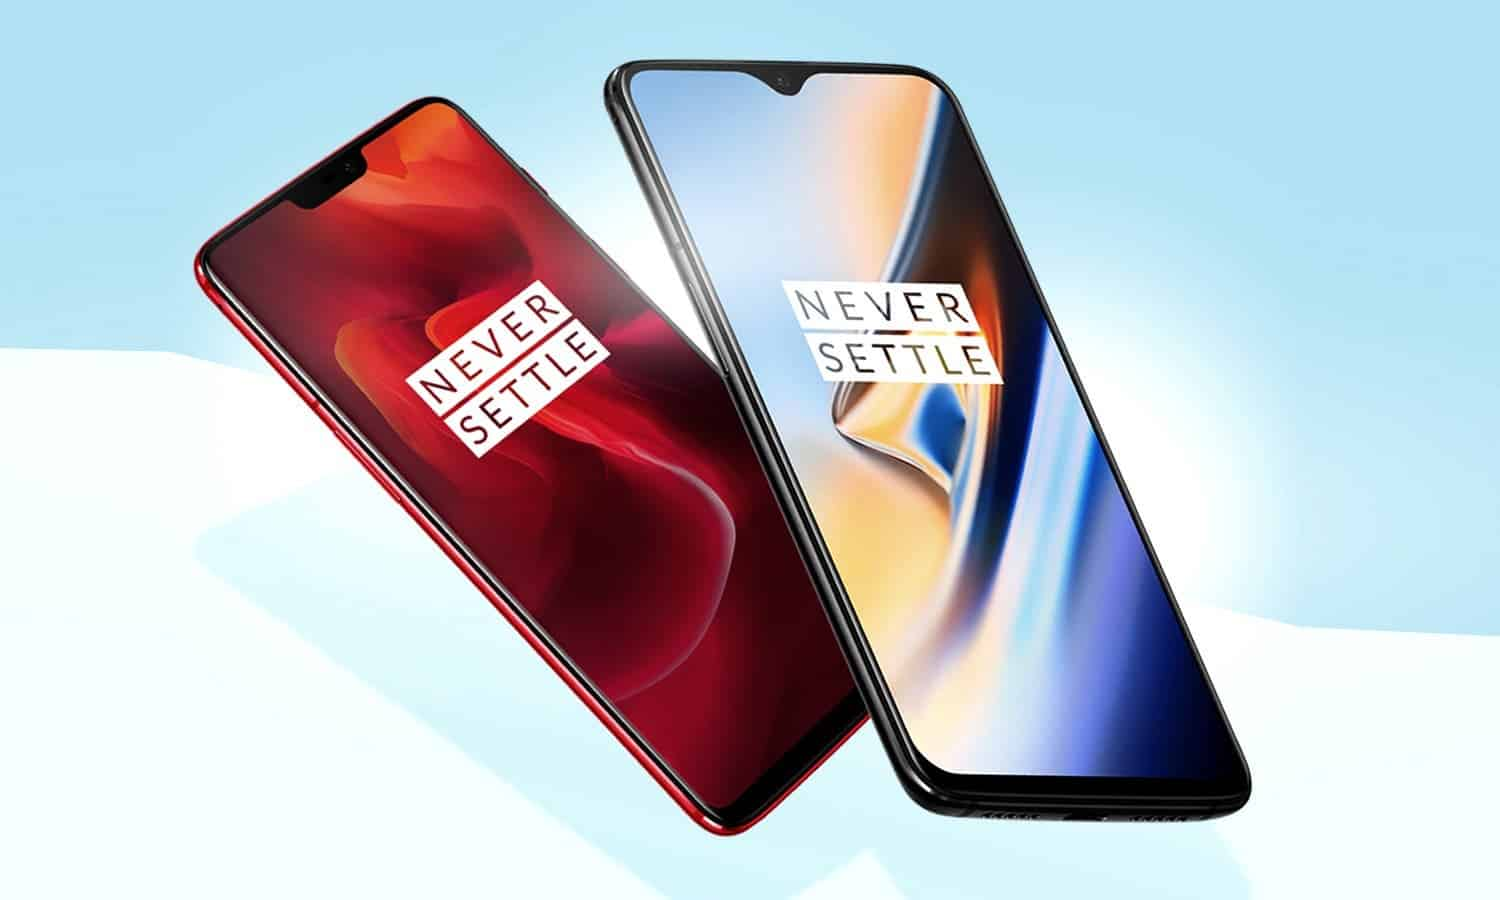 OnePlus 7T is on sale for $300 during Black Friday